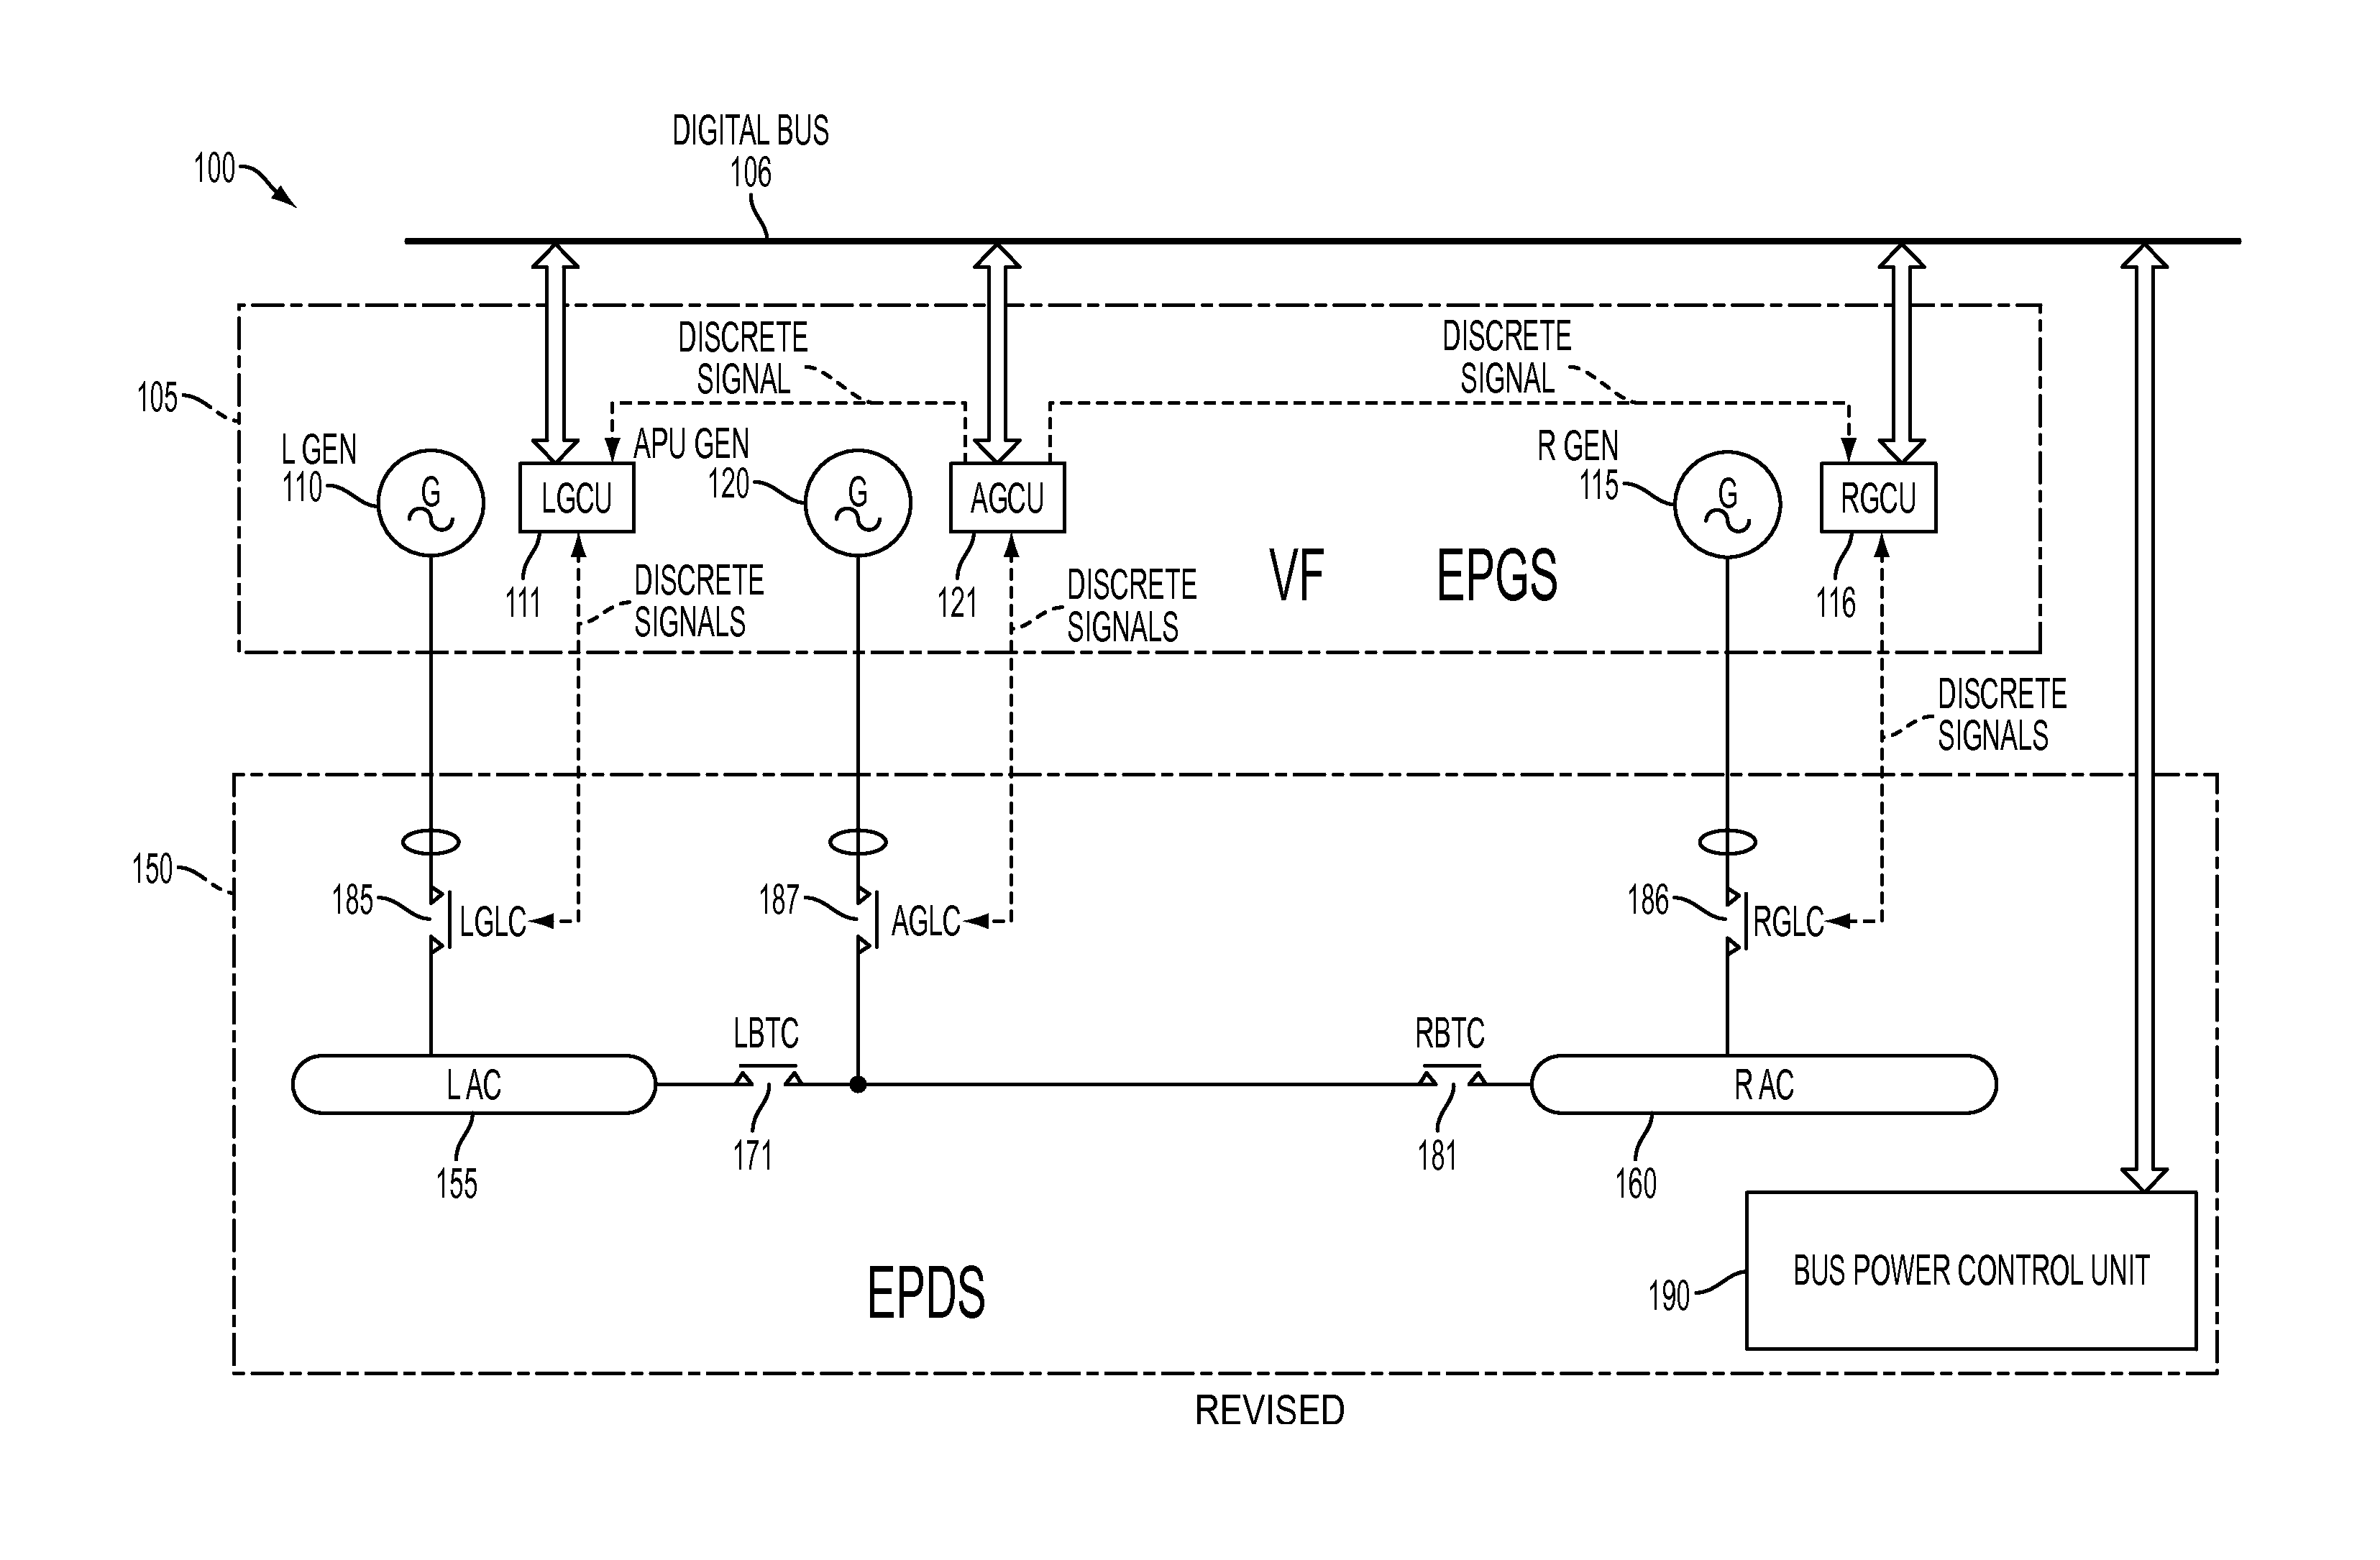 Patent Us20130271877 Overcurrent Protection And Fault Isolation V F Method Block Diagram Drawing